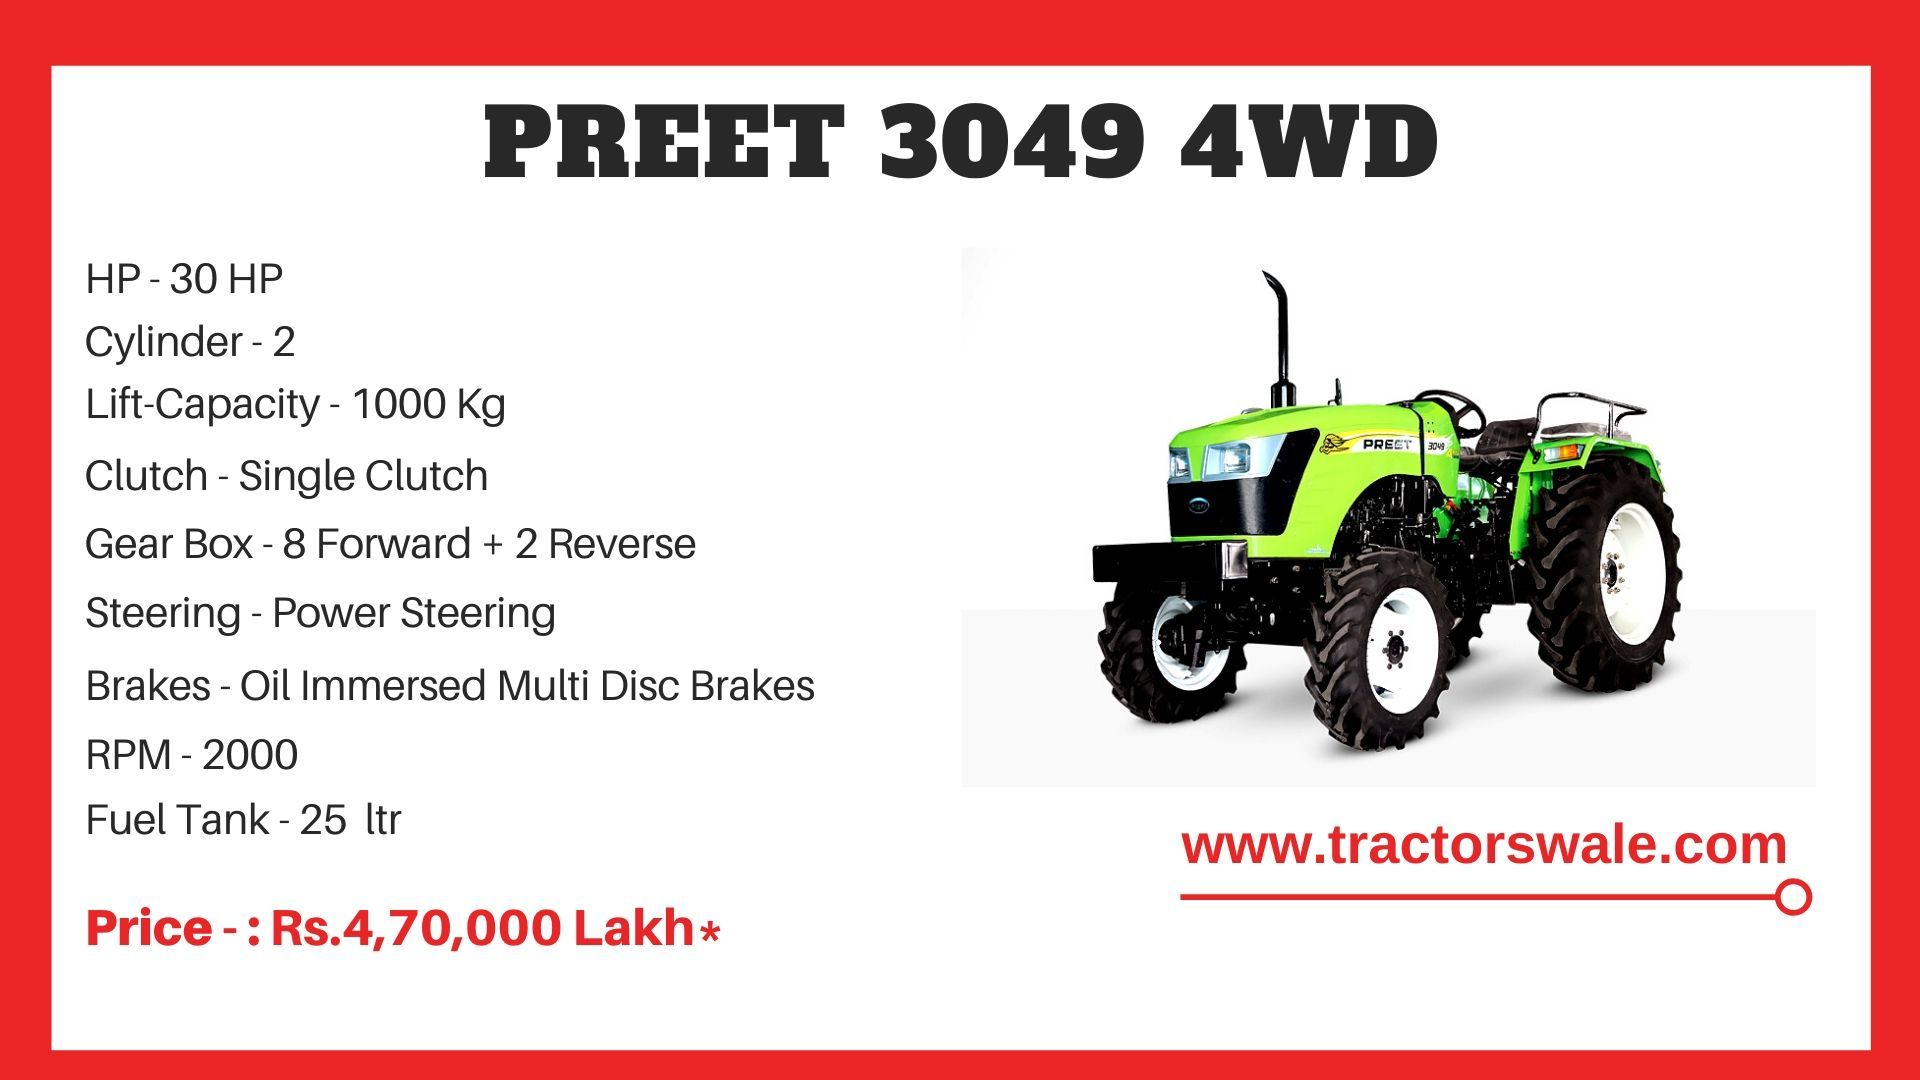 Preet 3049 4WD Tractor Price